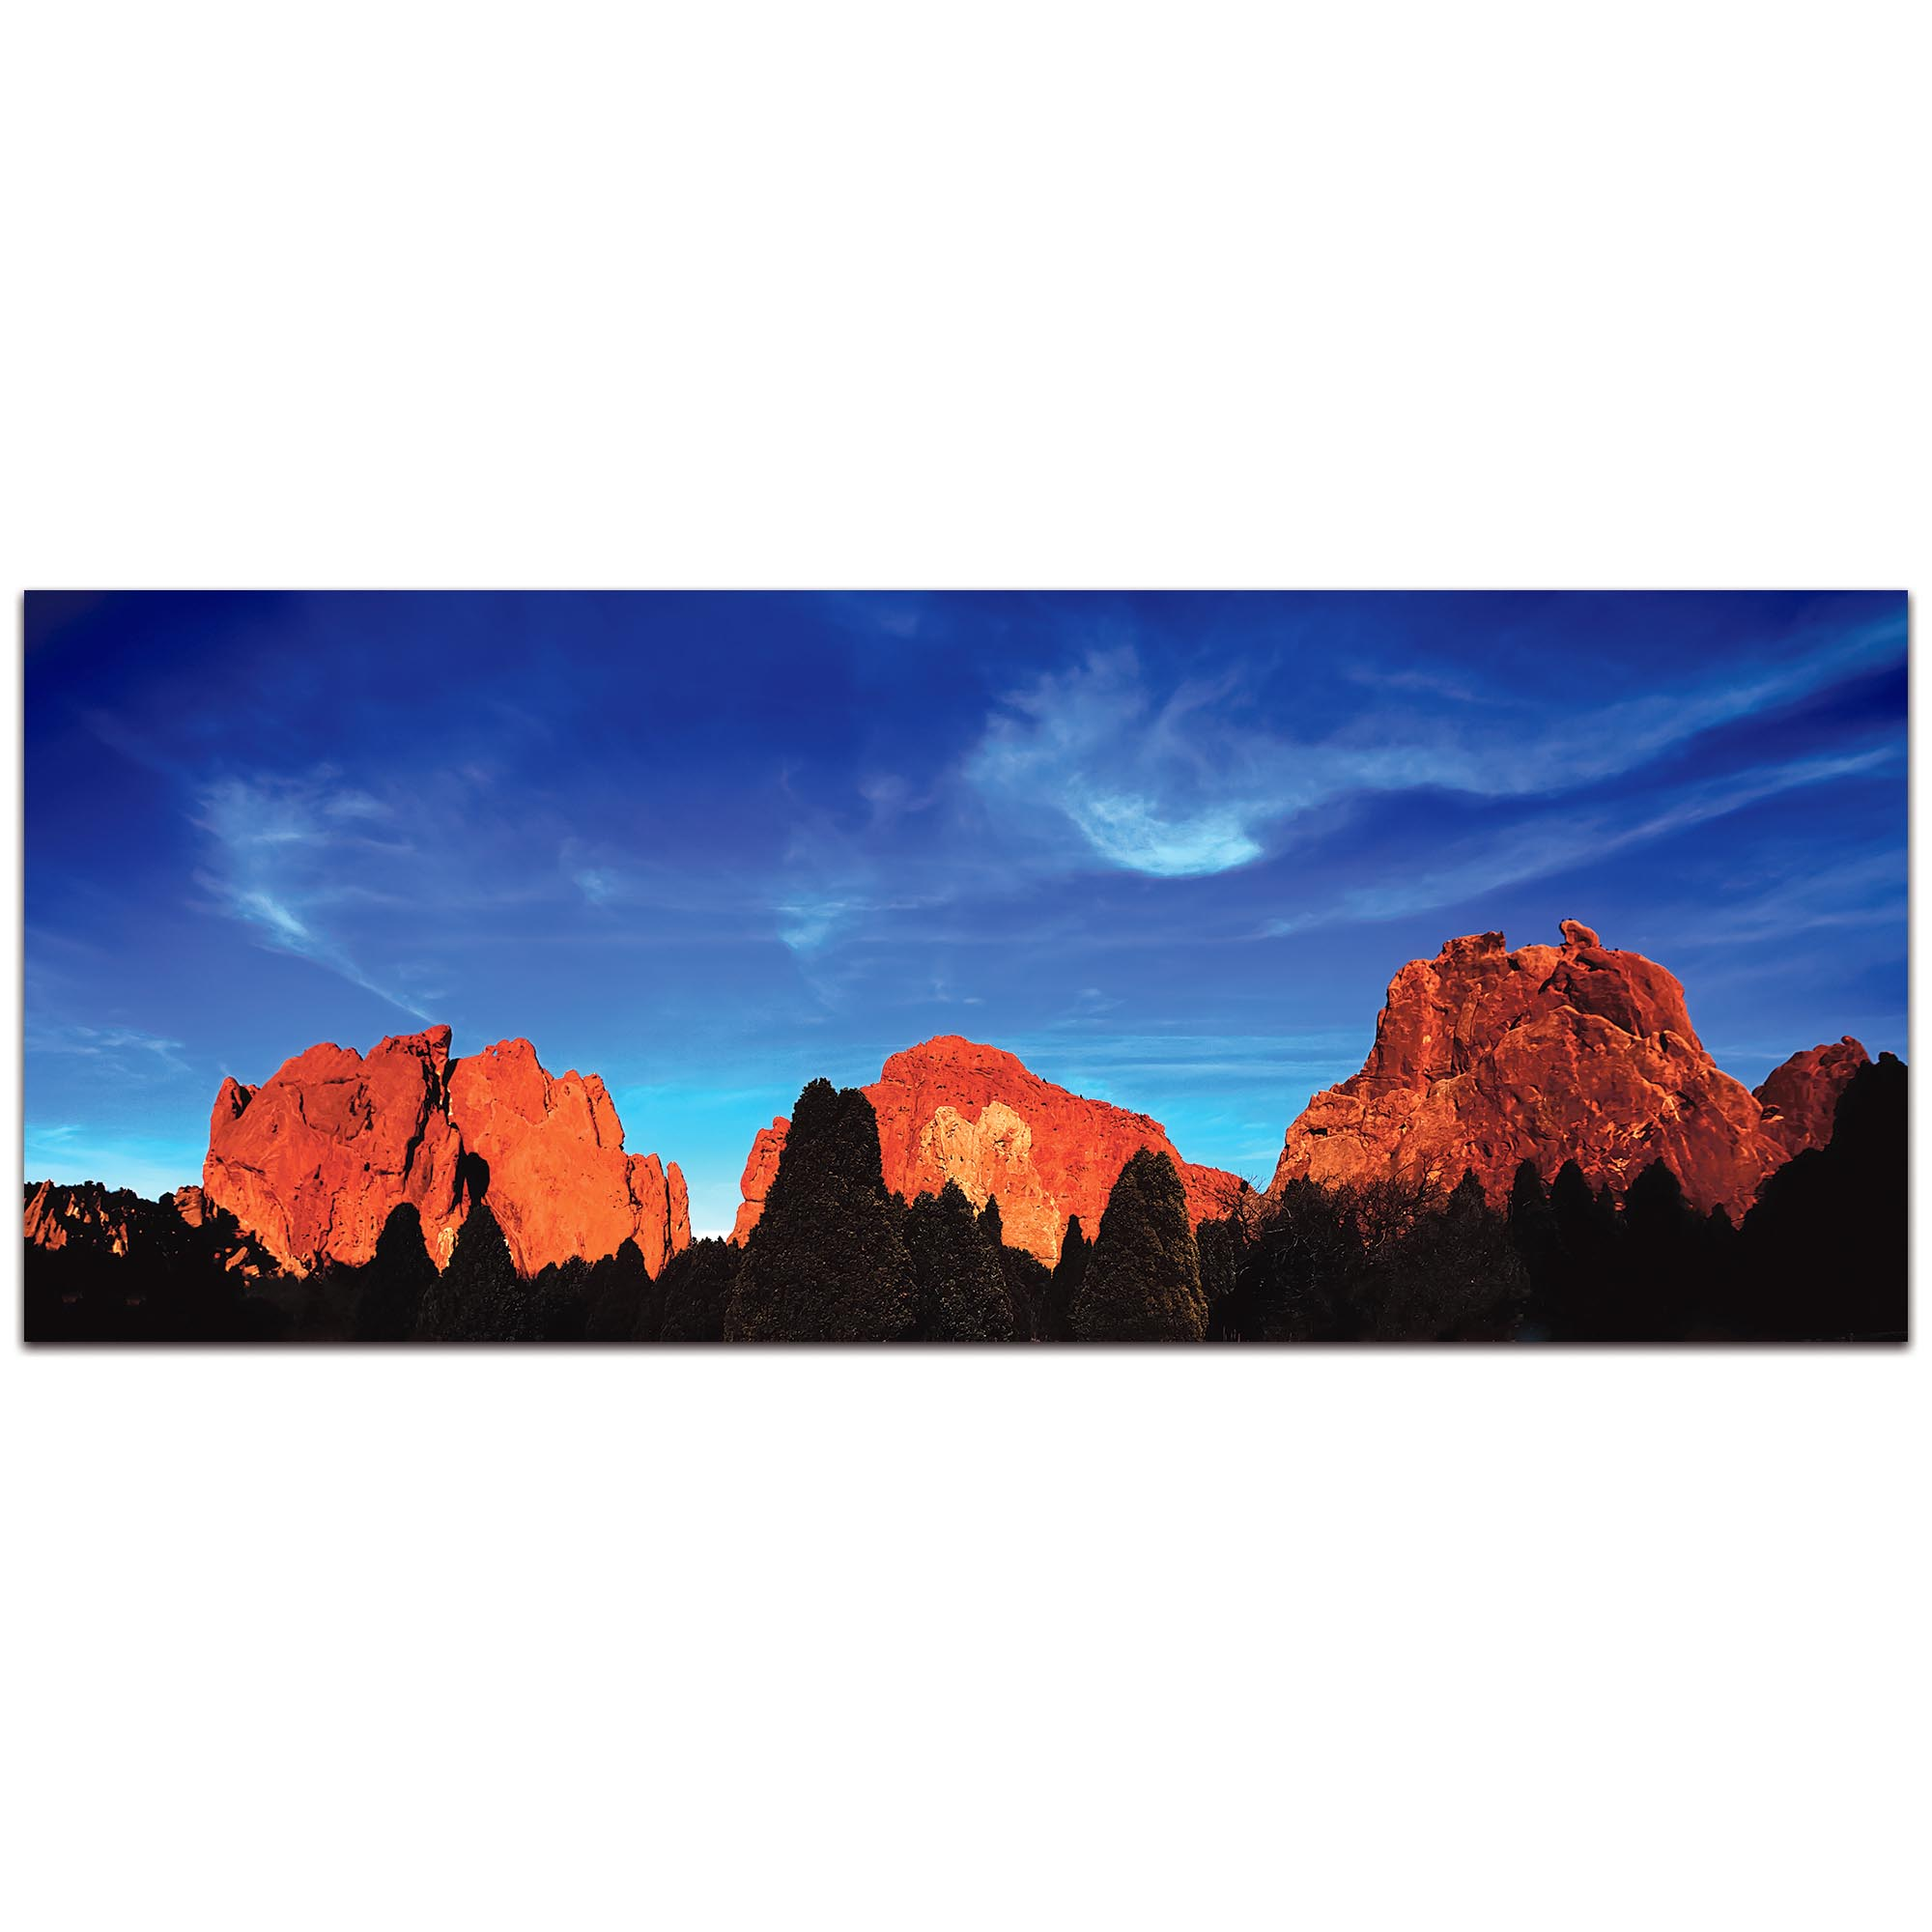 Landscape Photography 'Rocky Towers' - Desert Mountains Art on Metal or Plexiglass